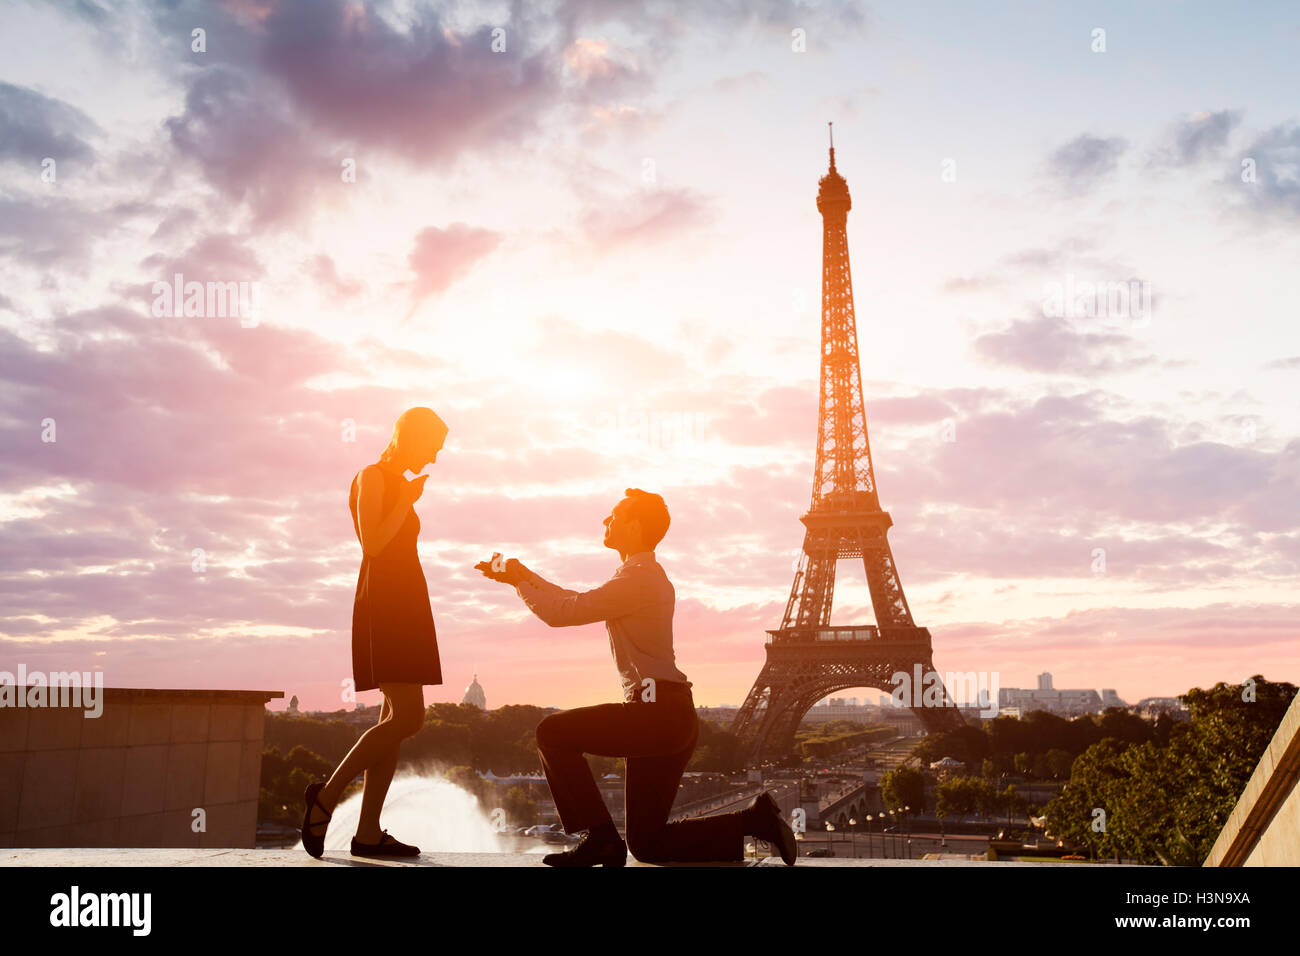 Romantic marriage proposal at Eiffel Tower, Paris, France - Stock Image